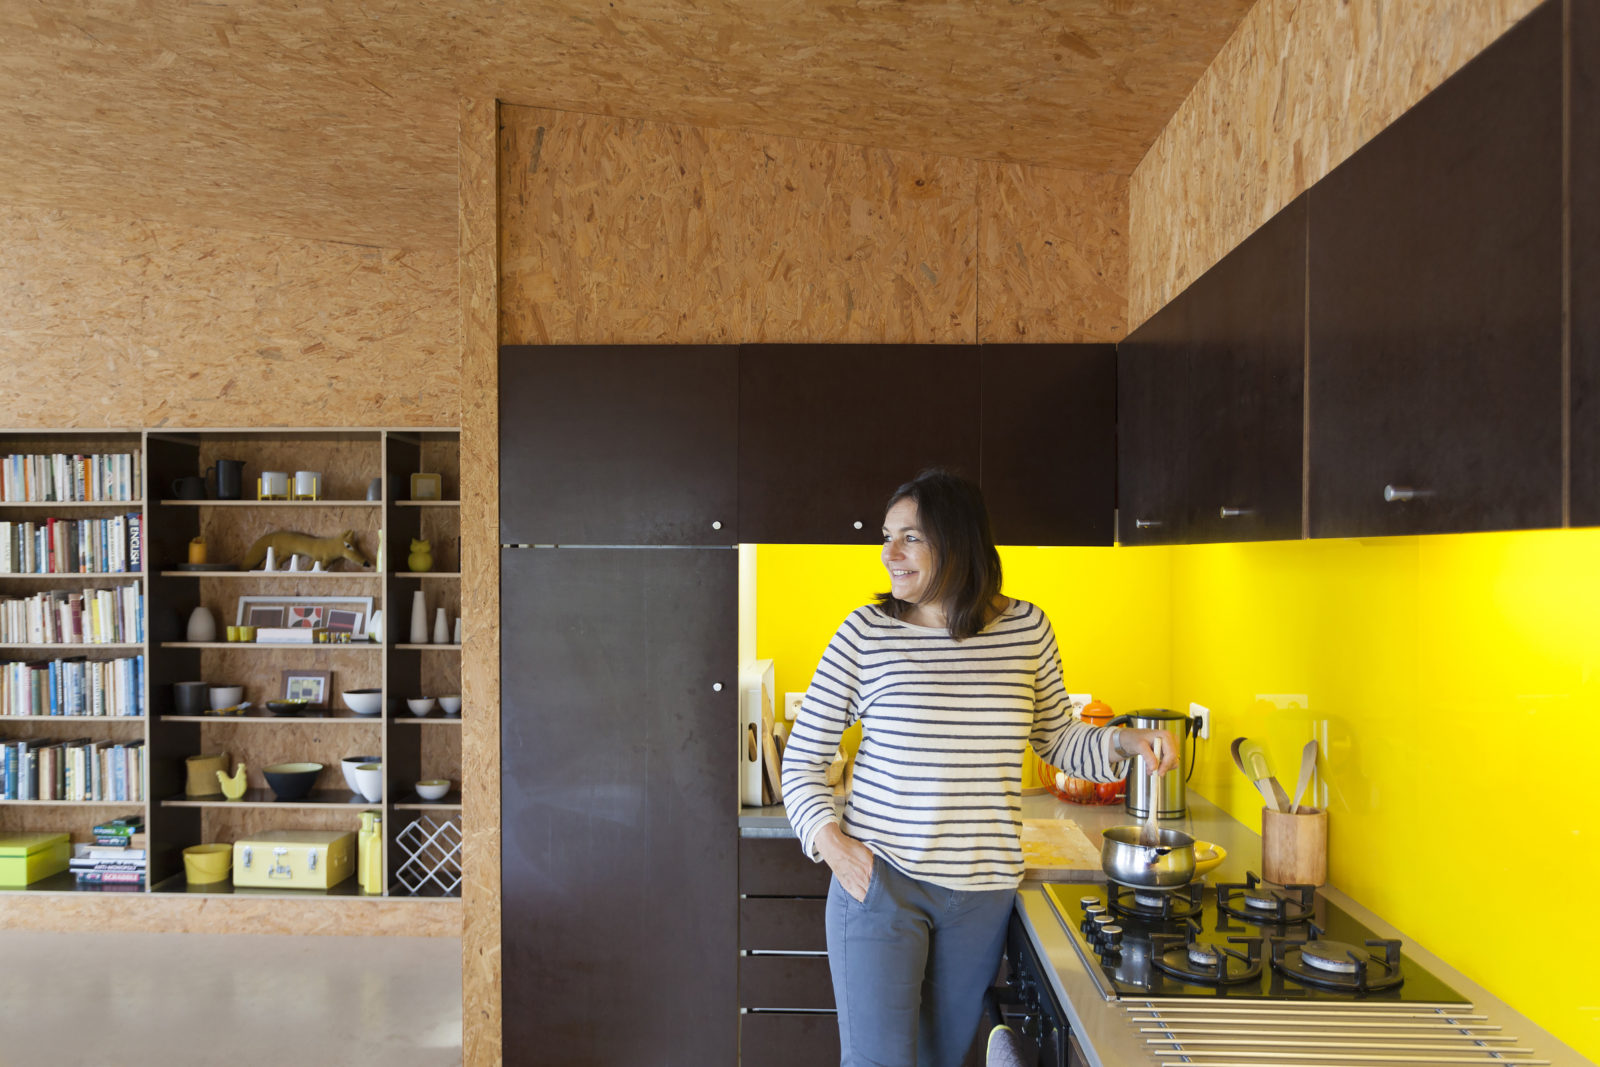 Architect Vicky Thornton in her kitchen